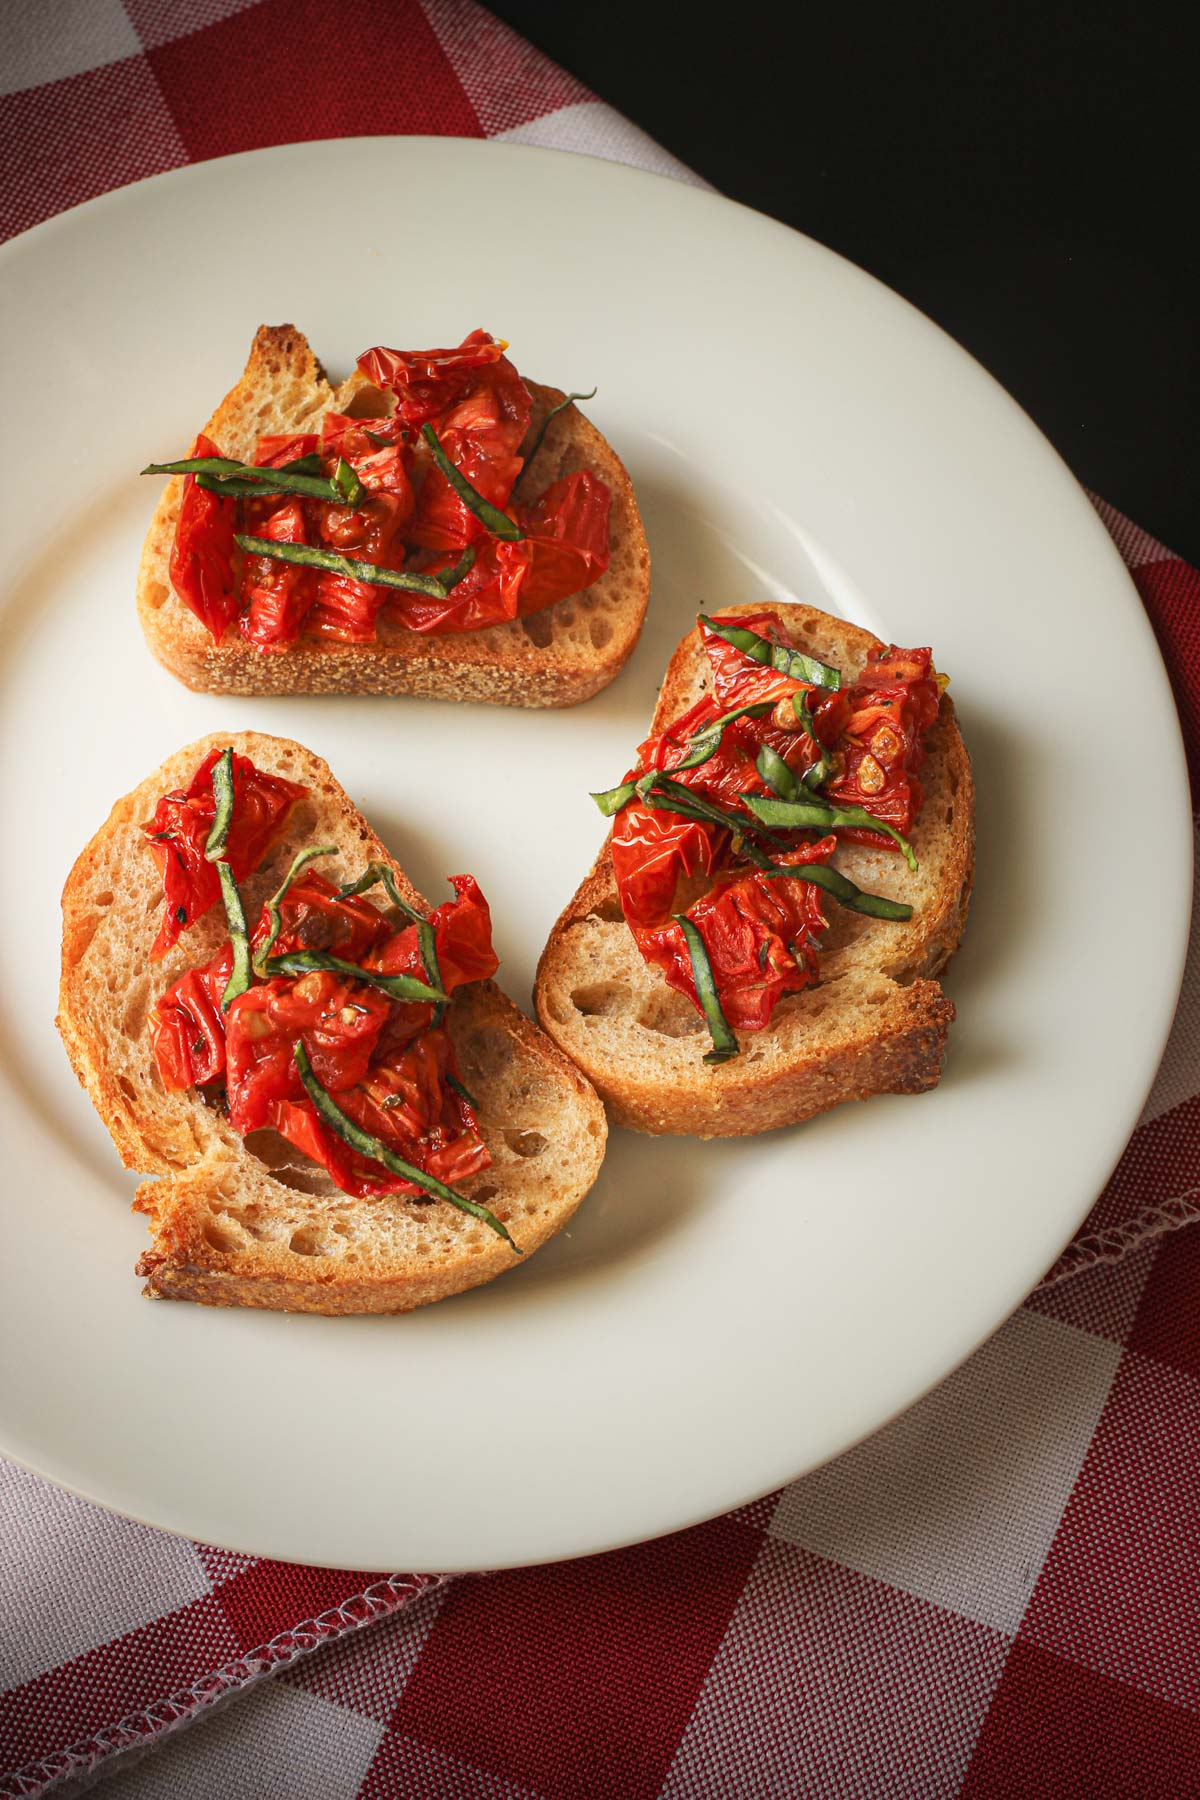 plate of toasts topped with oven roasted tomatoes with basil chiffonade.